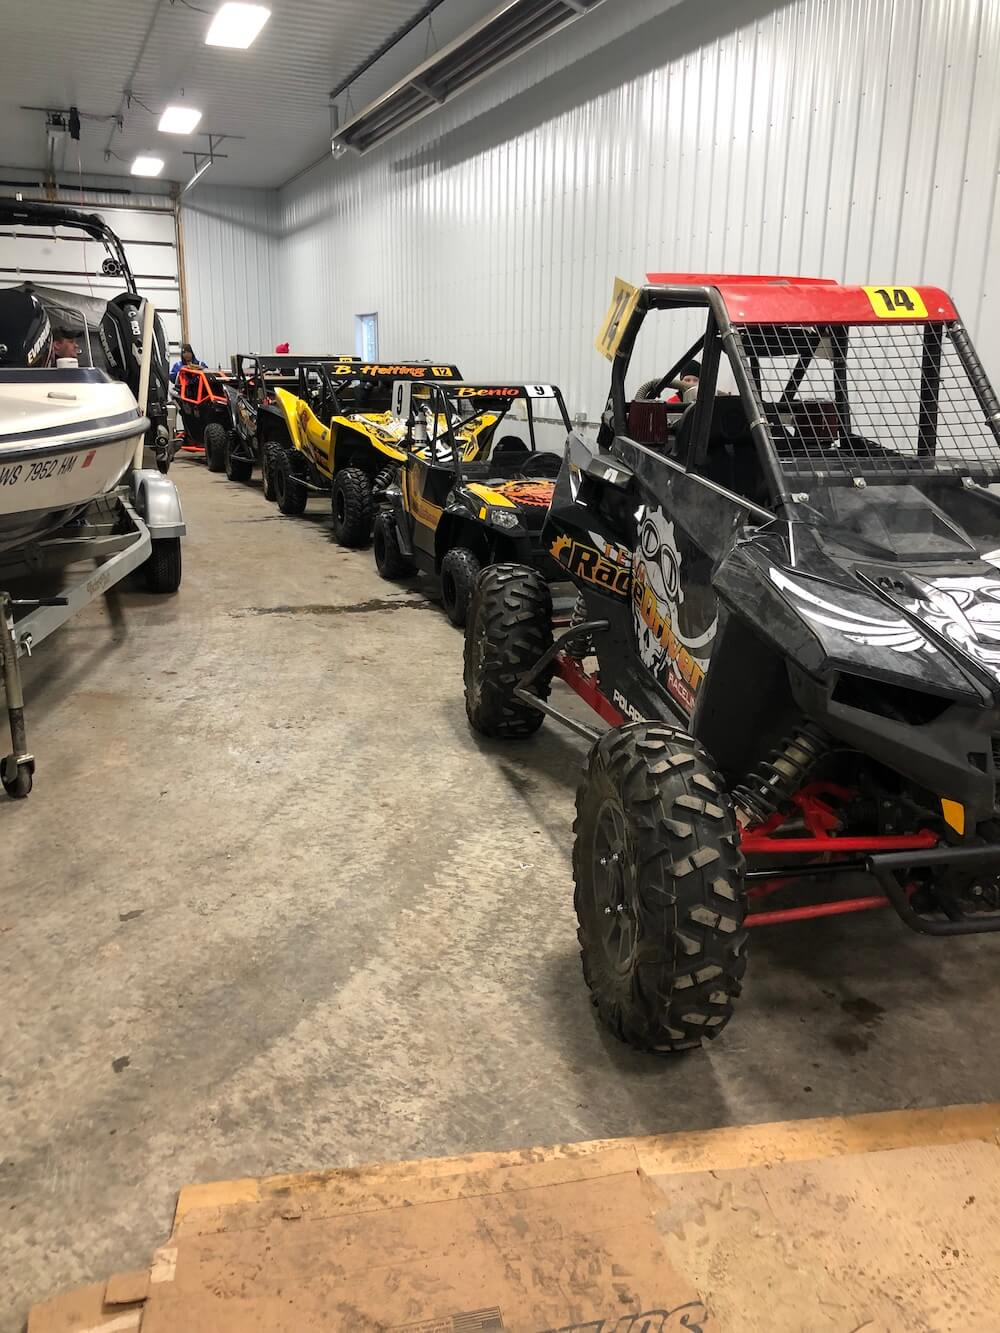 Five SXS's in a shed